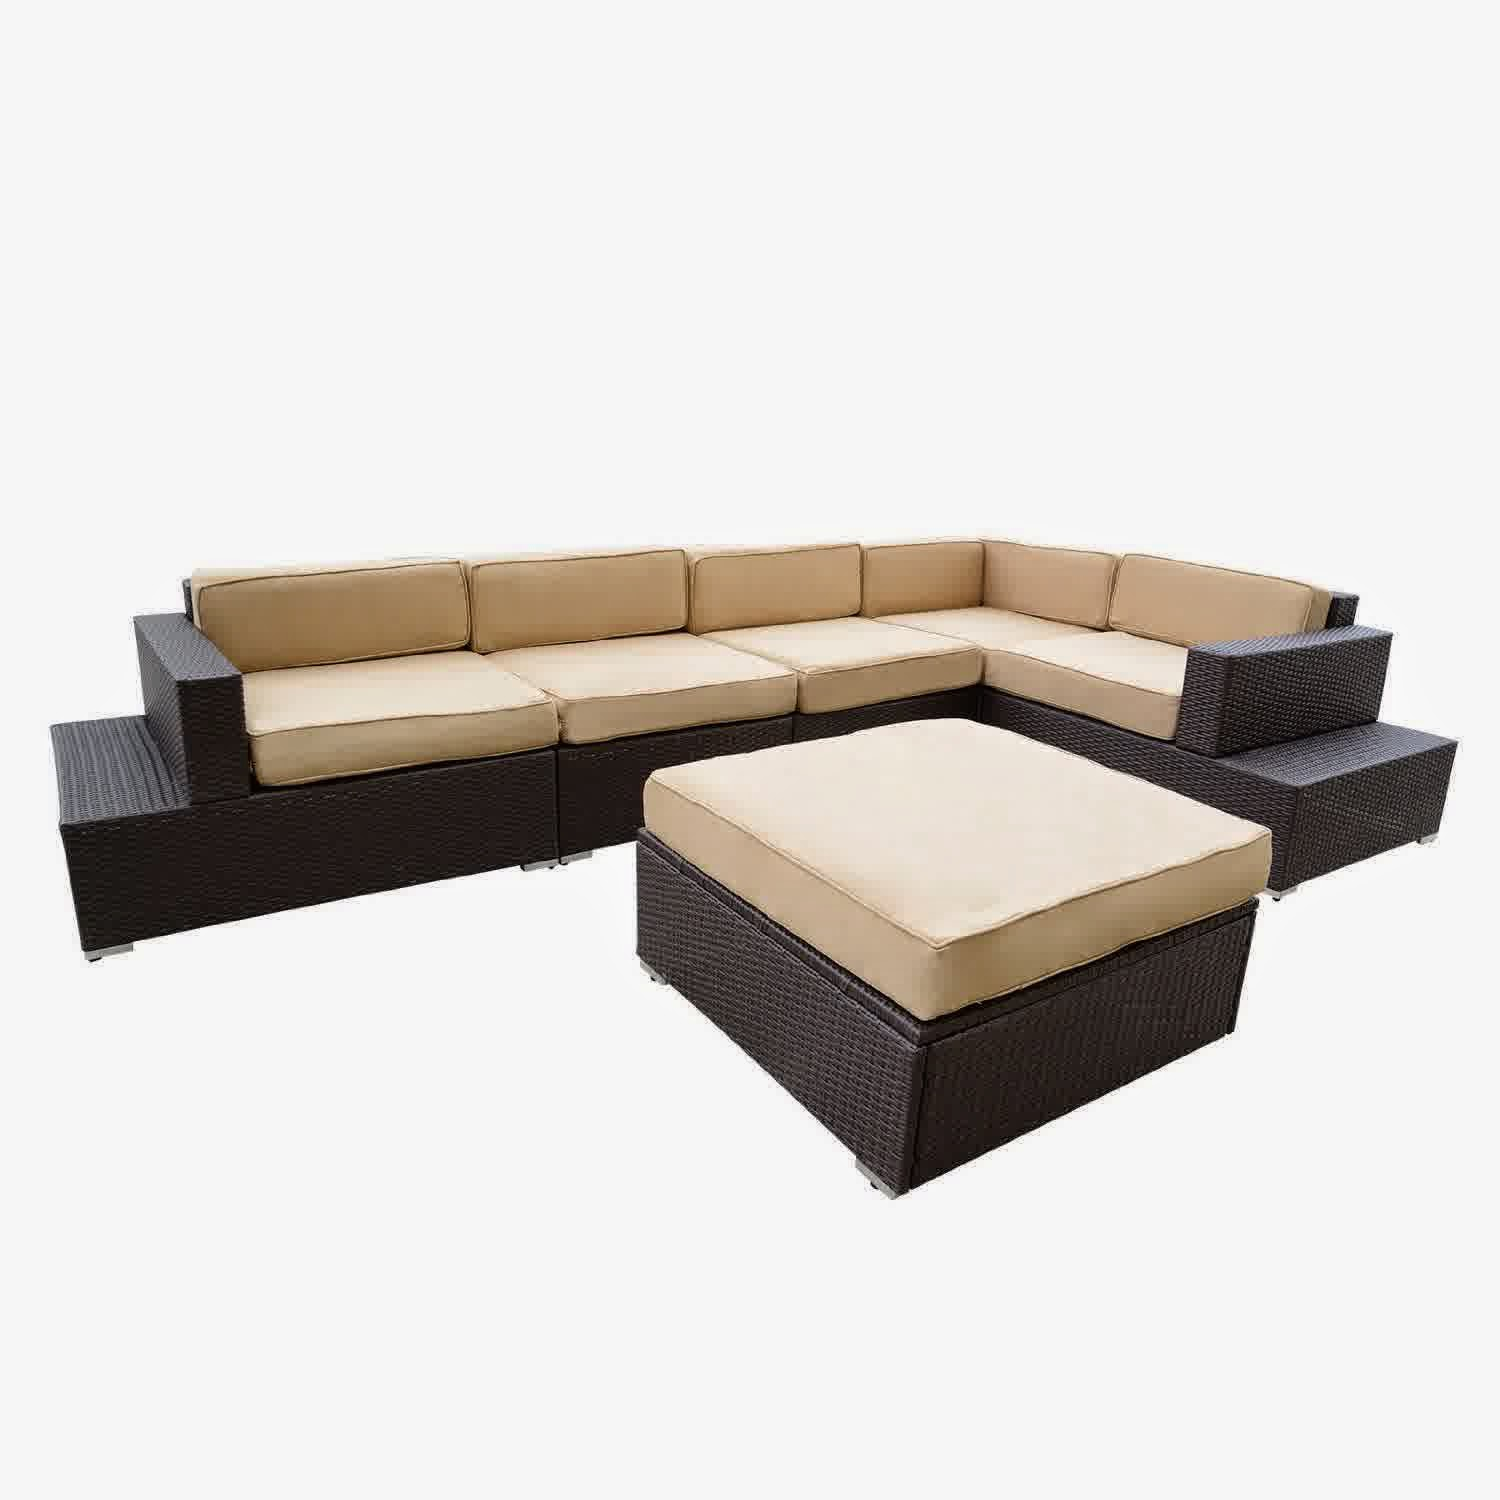 big sale discount 50 outdoor patio rattan sofa wicker sectional furniture sofa set outdoor. Black Bedroom Furniture Sets. Home Design Ideas